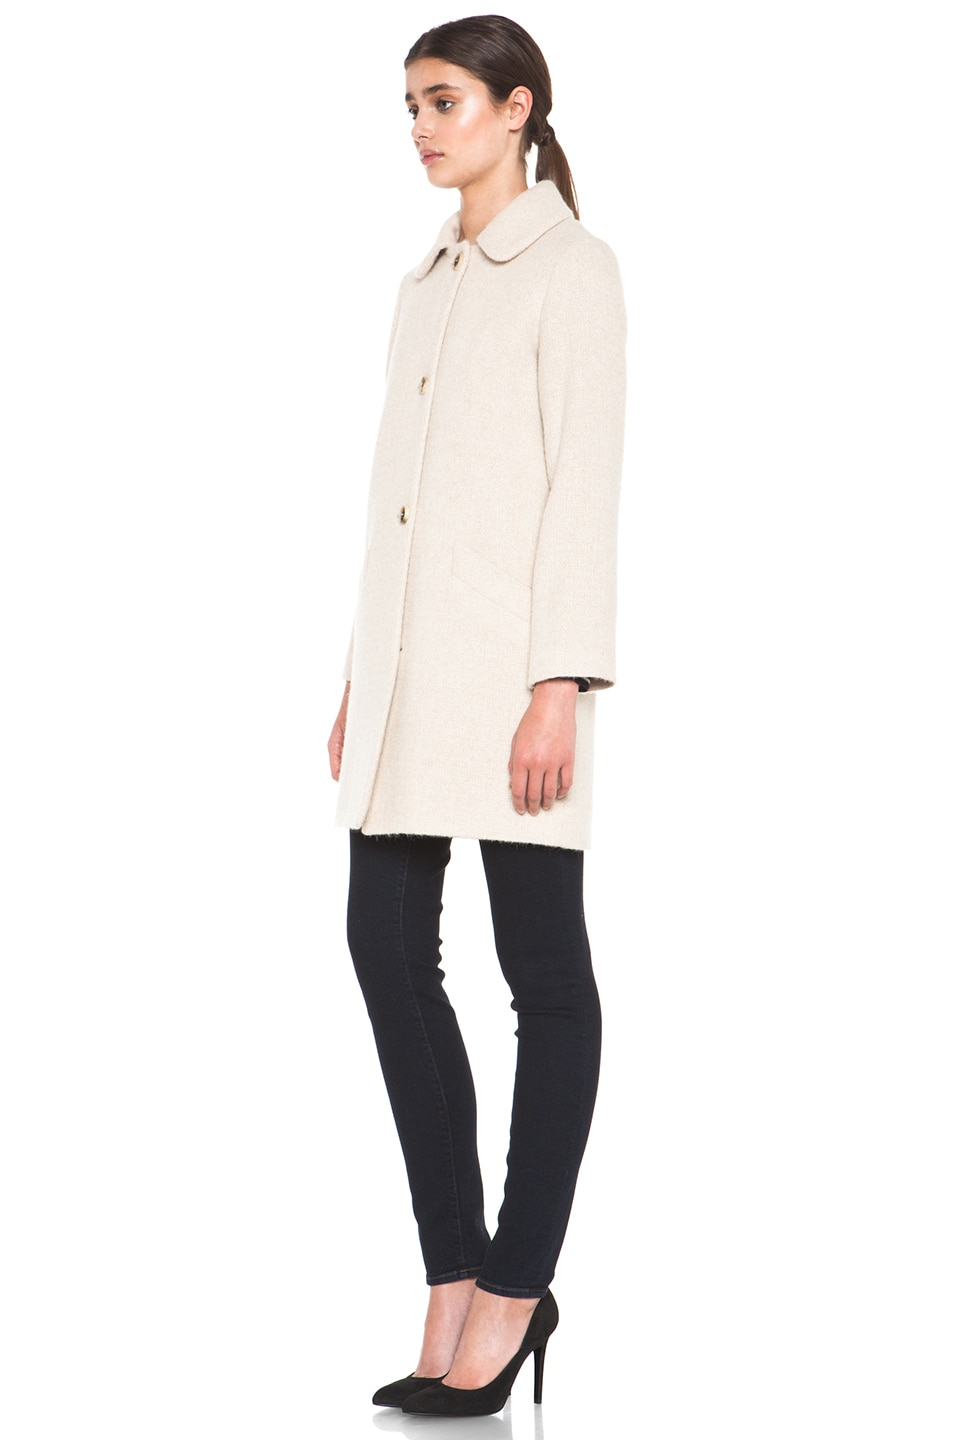 Image 2 of A.P.C. Manteau Poupee Alpaca Jacket in Beige